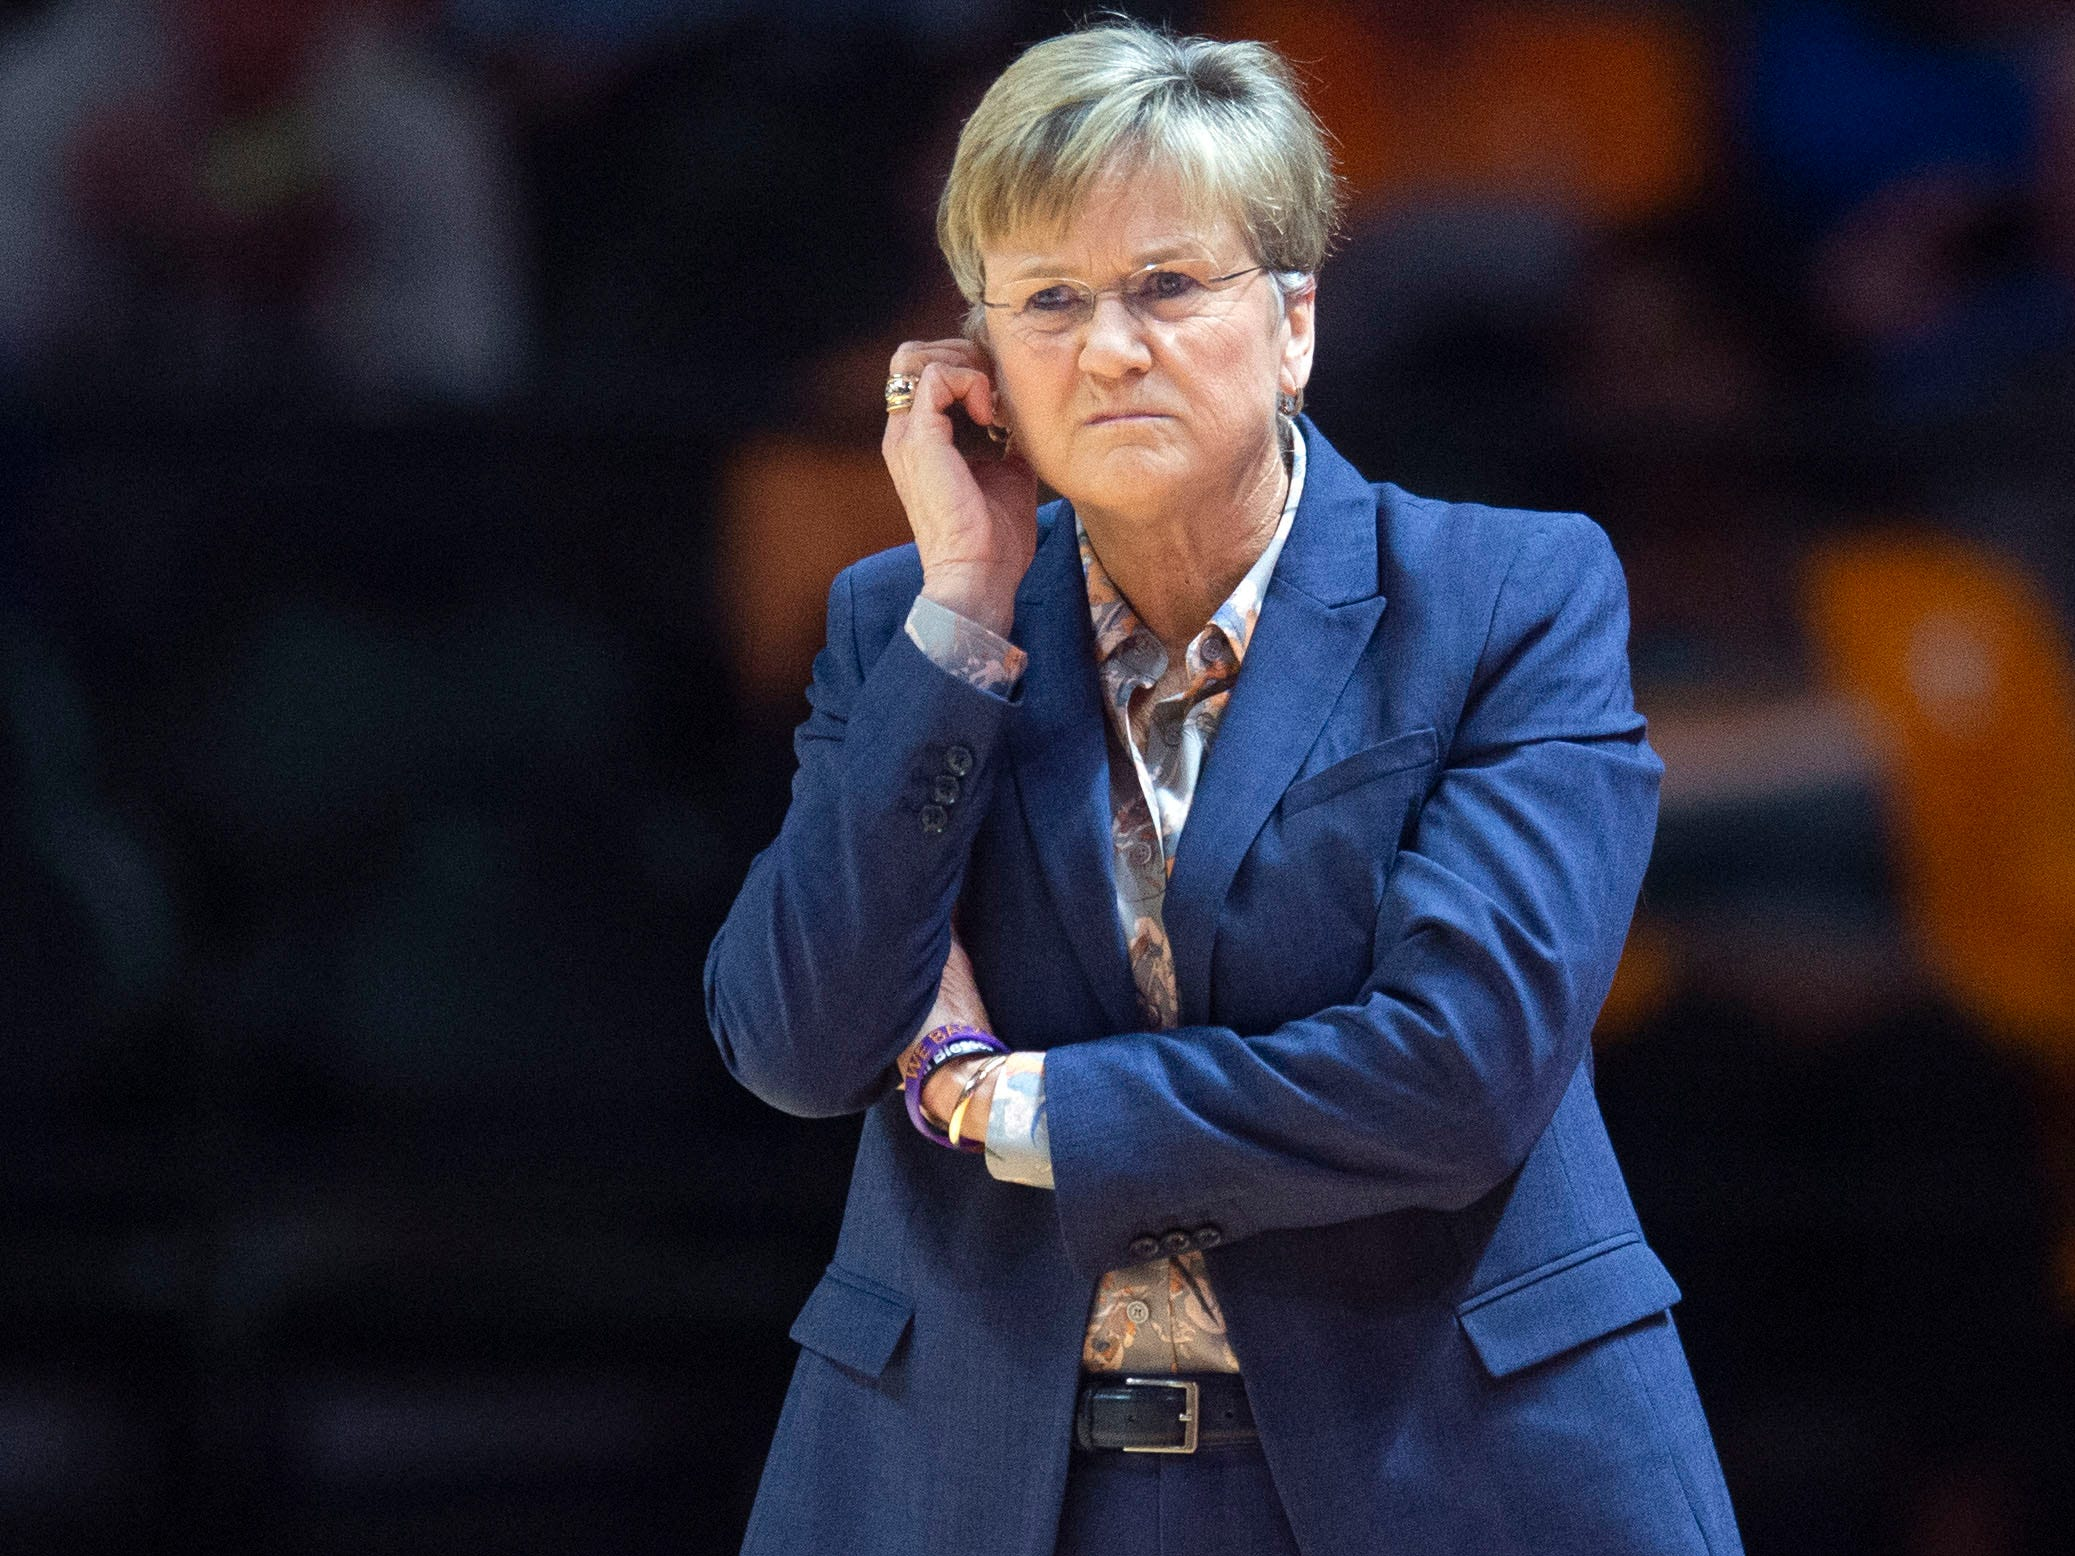 Tennessee women's basketball coach Holly Warlick during the game against Auburn on Thursday, February 14, 2019.